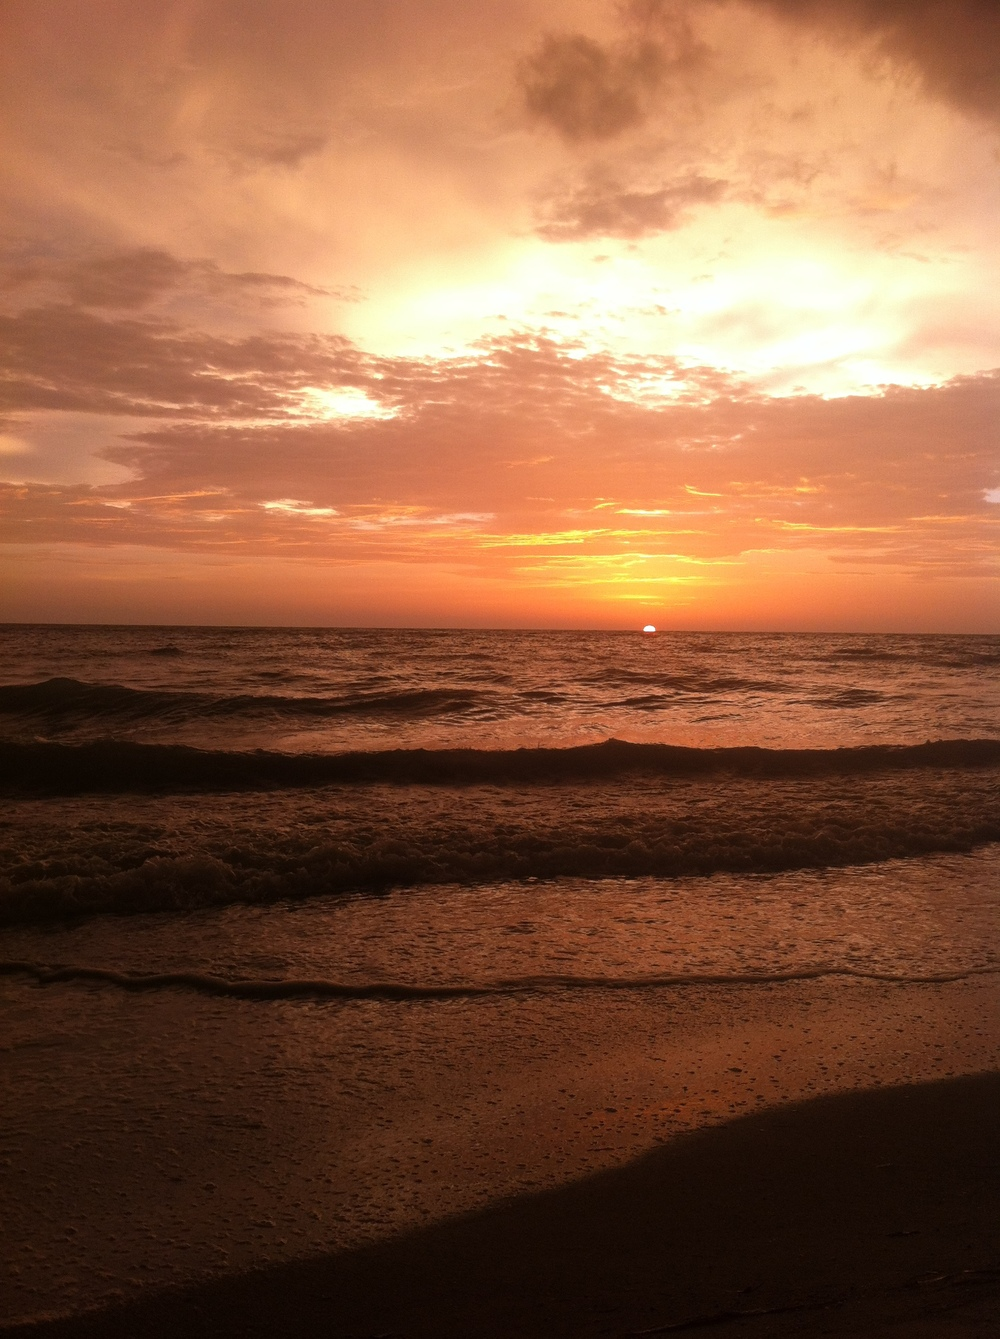 Photo taken by Elly Rundqwist at Captiva Island.